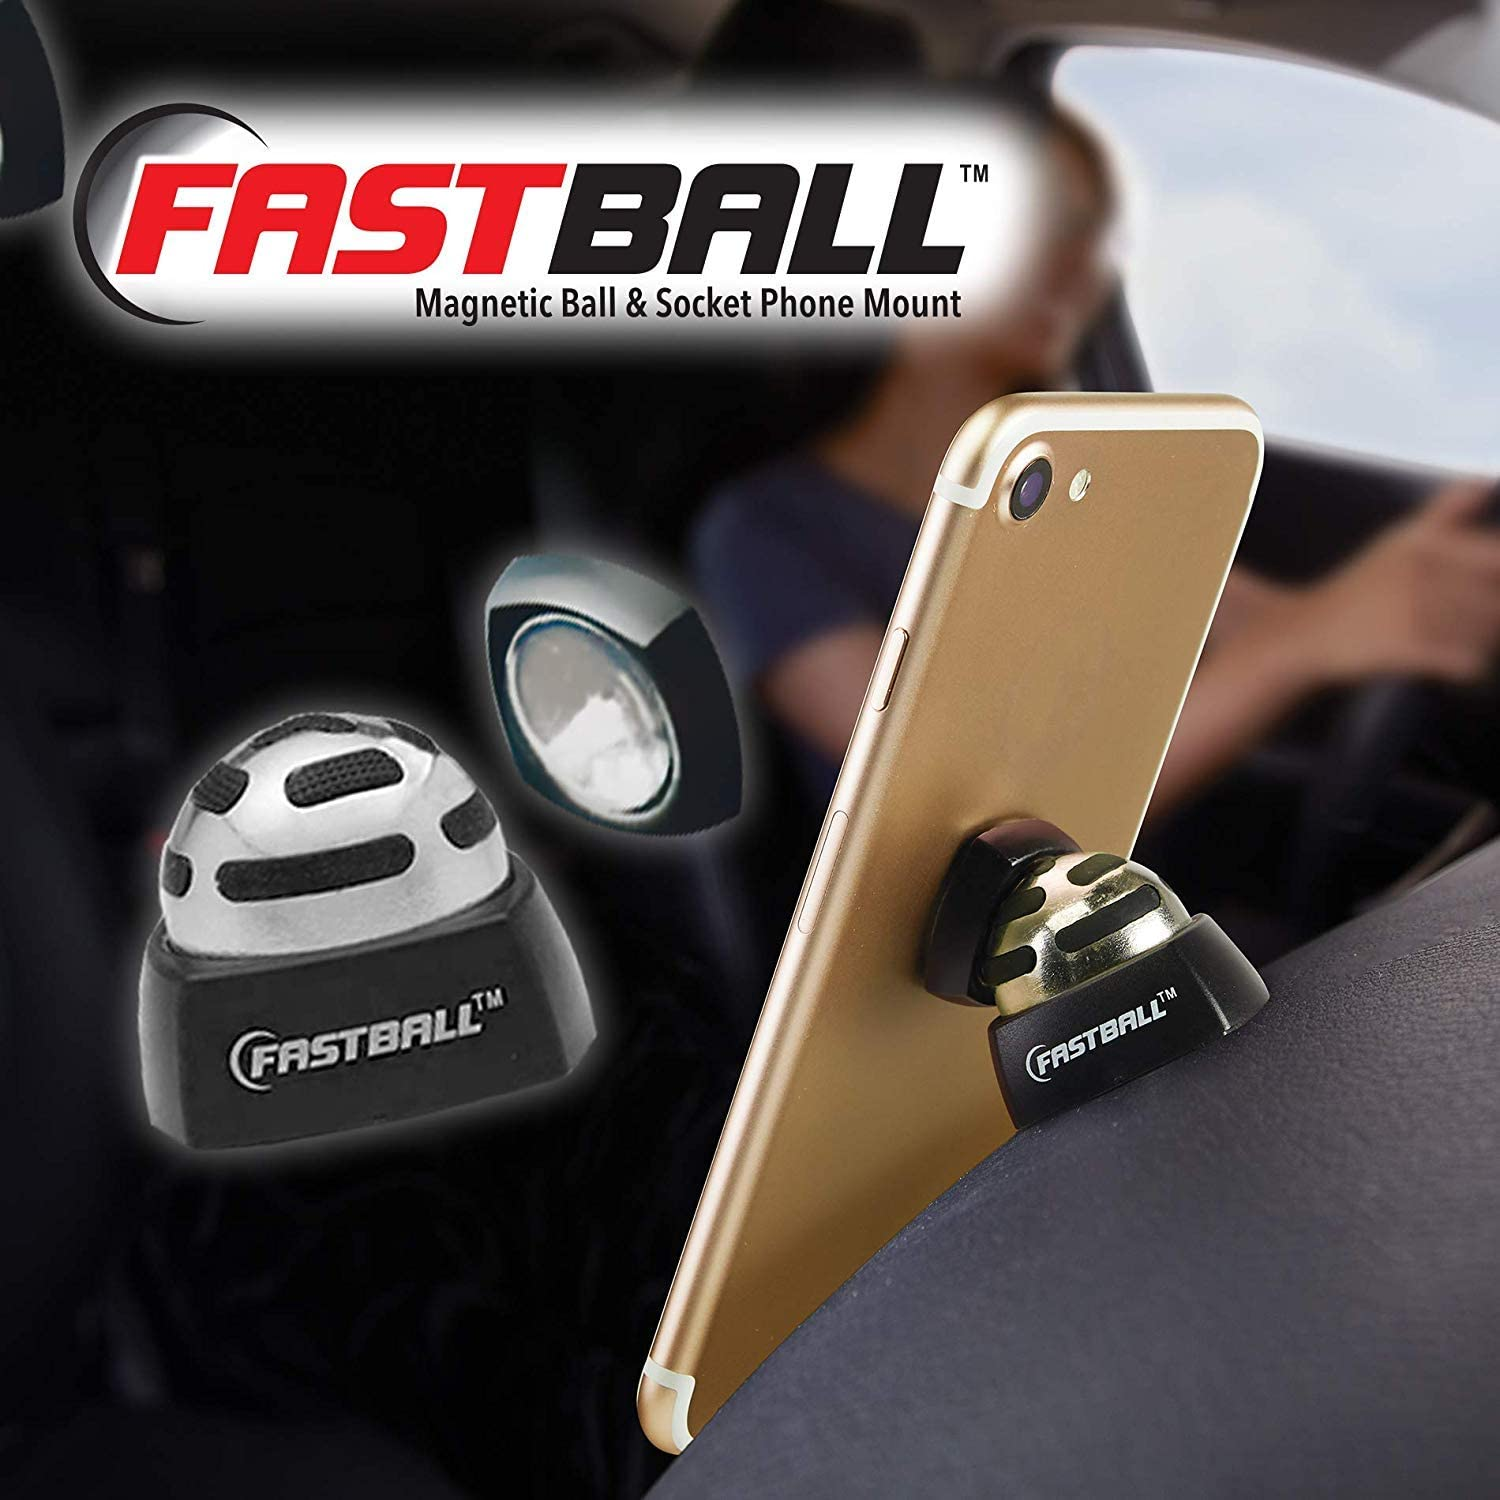 As Seen On TV Fastball Magnetic Car Cell Phone Mount/Holder by BulbHead – Universal 360 Degree Car Dashboard Cellphone Holder...